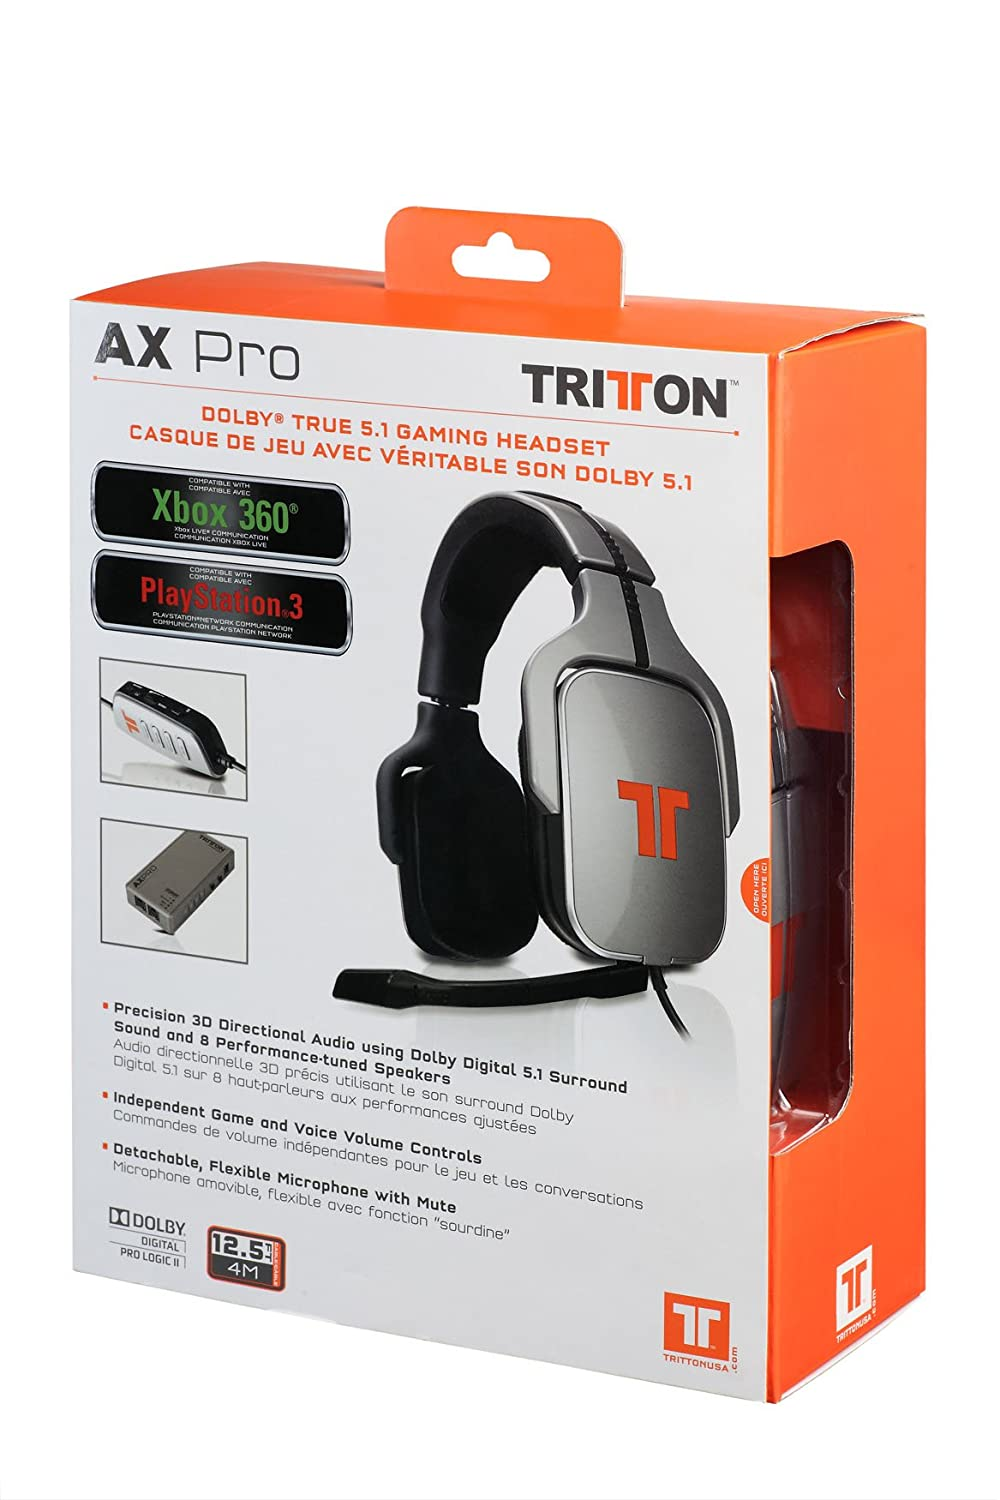 ac28f992229 Tritton AX Pro Dolby Digital Precision Gaming Headset for Xbox 360 and PS3  - Standard Edition: Xbox 360 Accessories: Amazon.ca: Computer and Video  Games